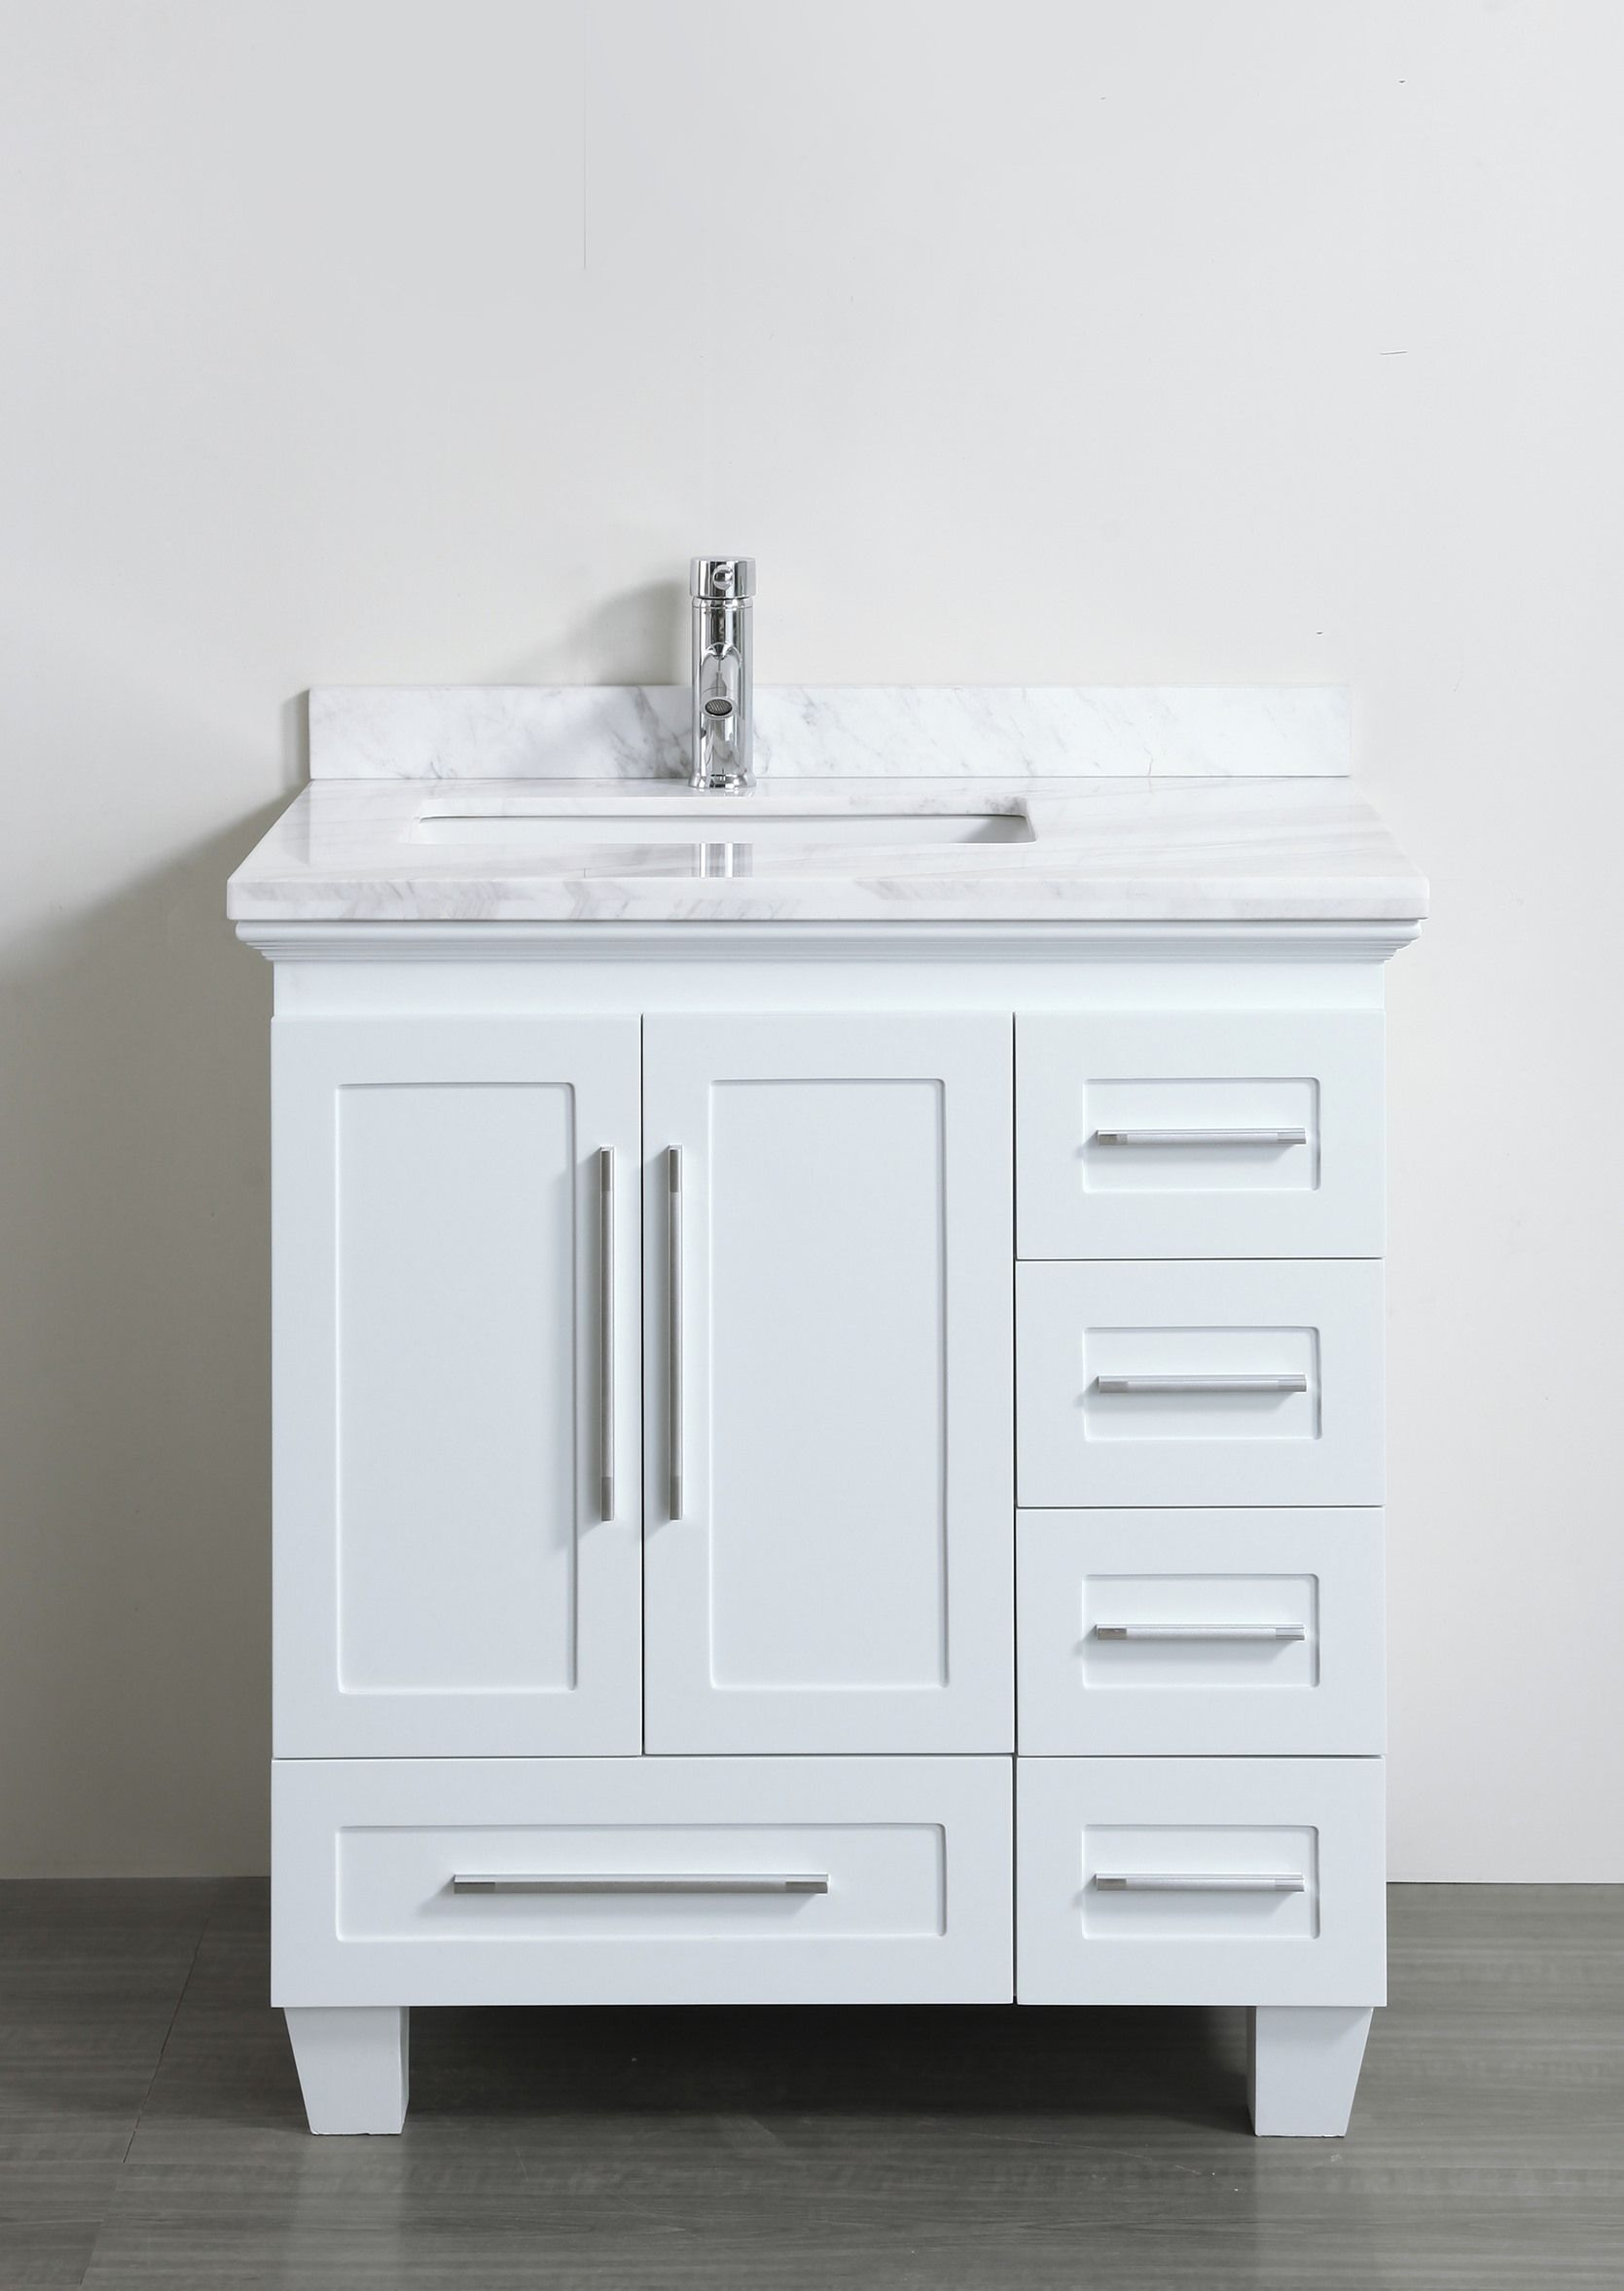 30 Vanity With Drawers A Modern White Bathroom Vanity Looks Quite Appealing With Neatly